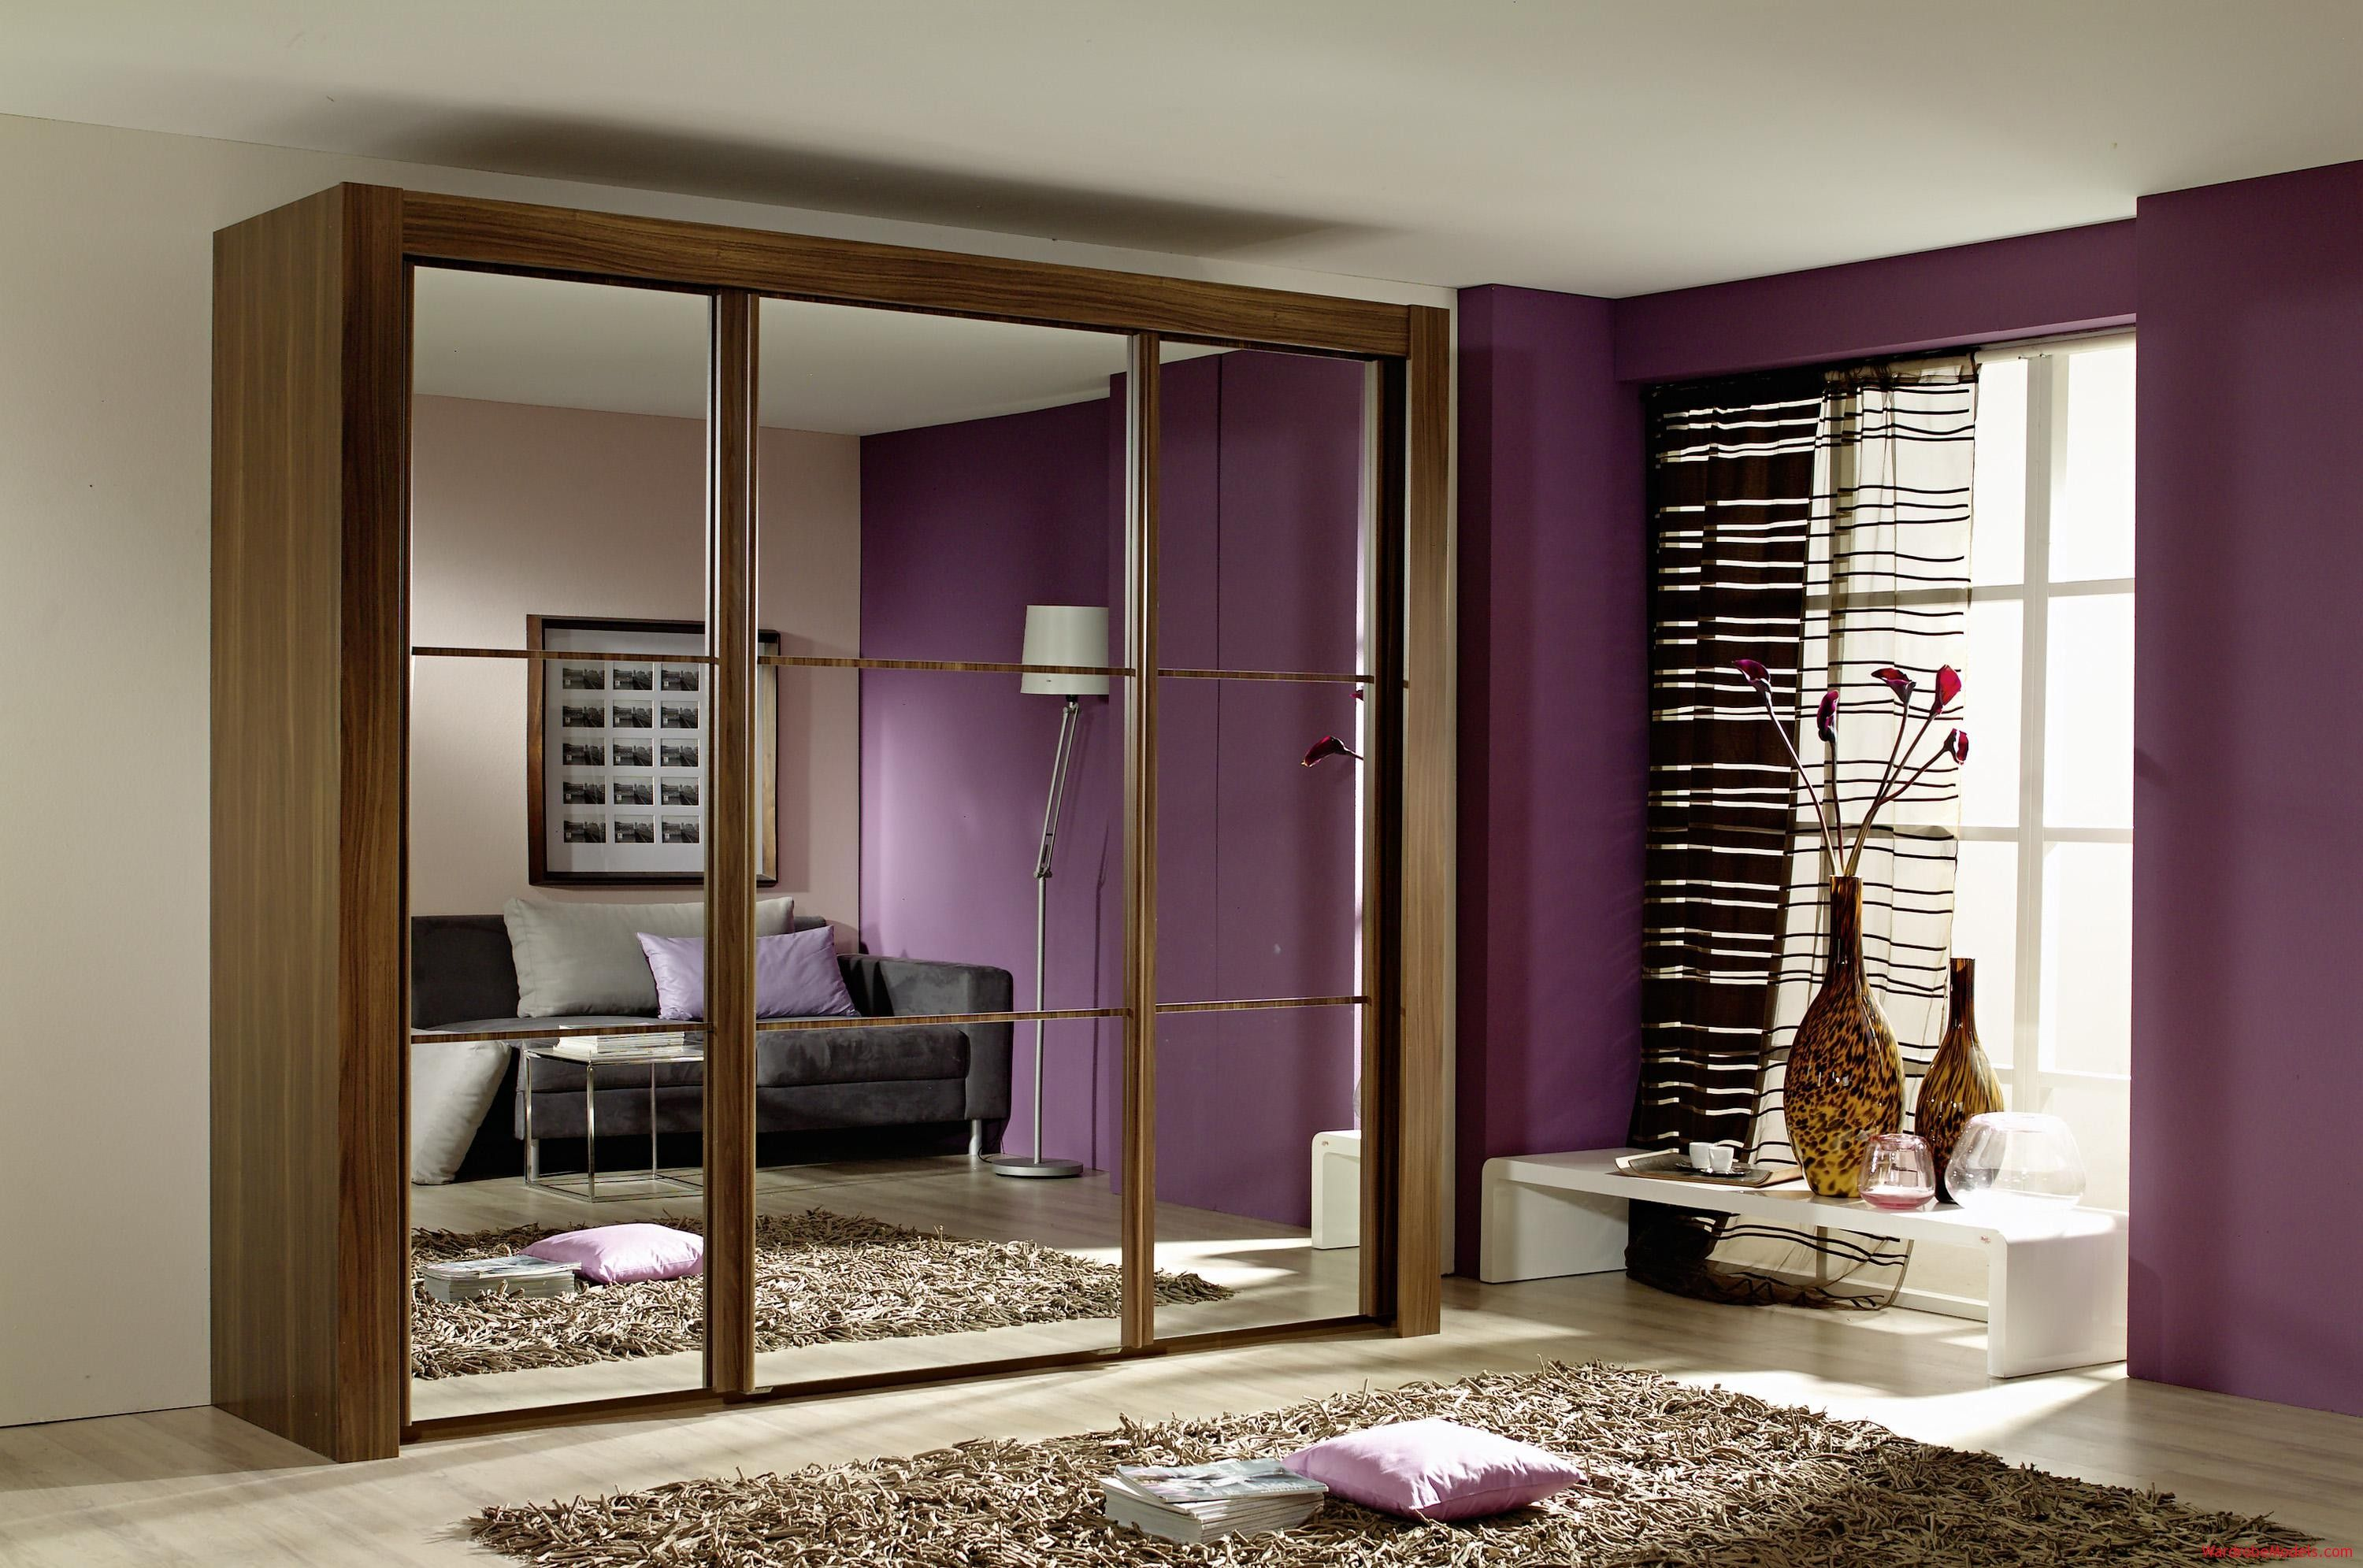 Amazing Modern Small Bedroom With Brown Laminated Wooden Wardrobe With Mirror Door Design